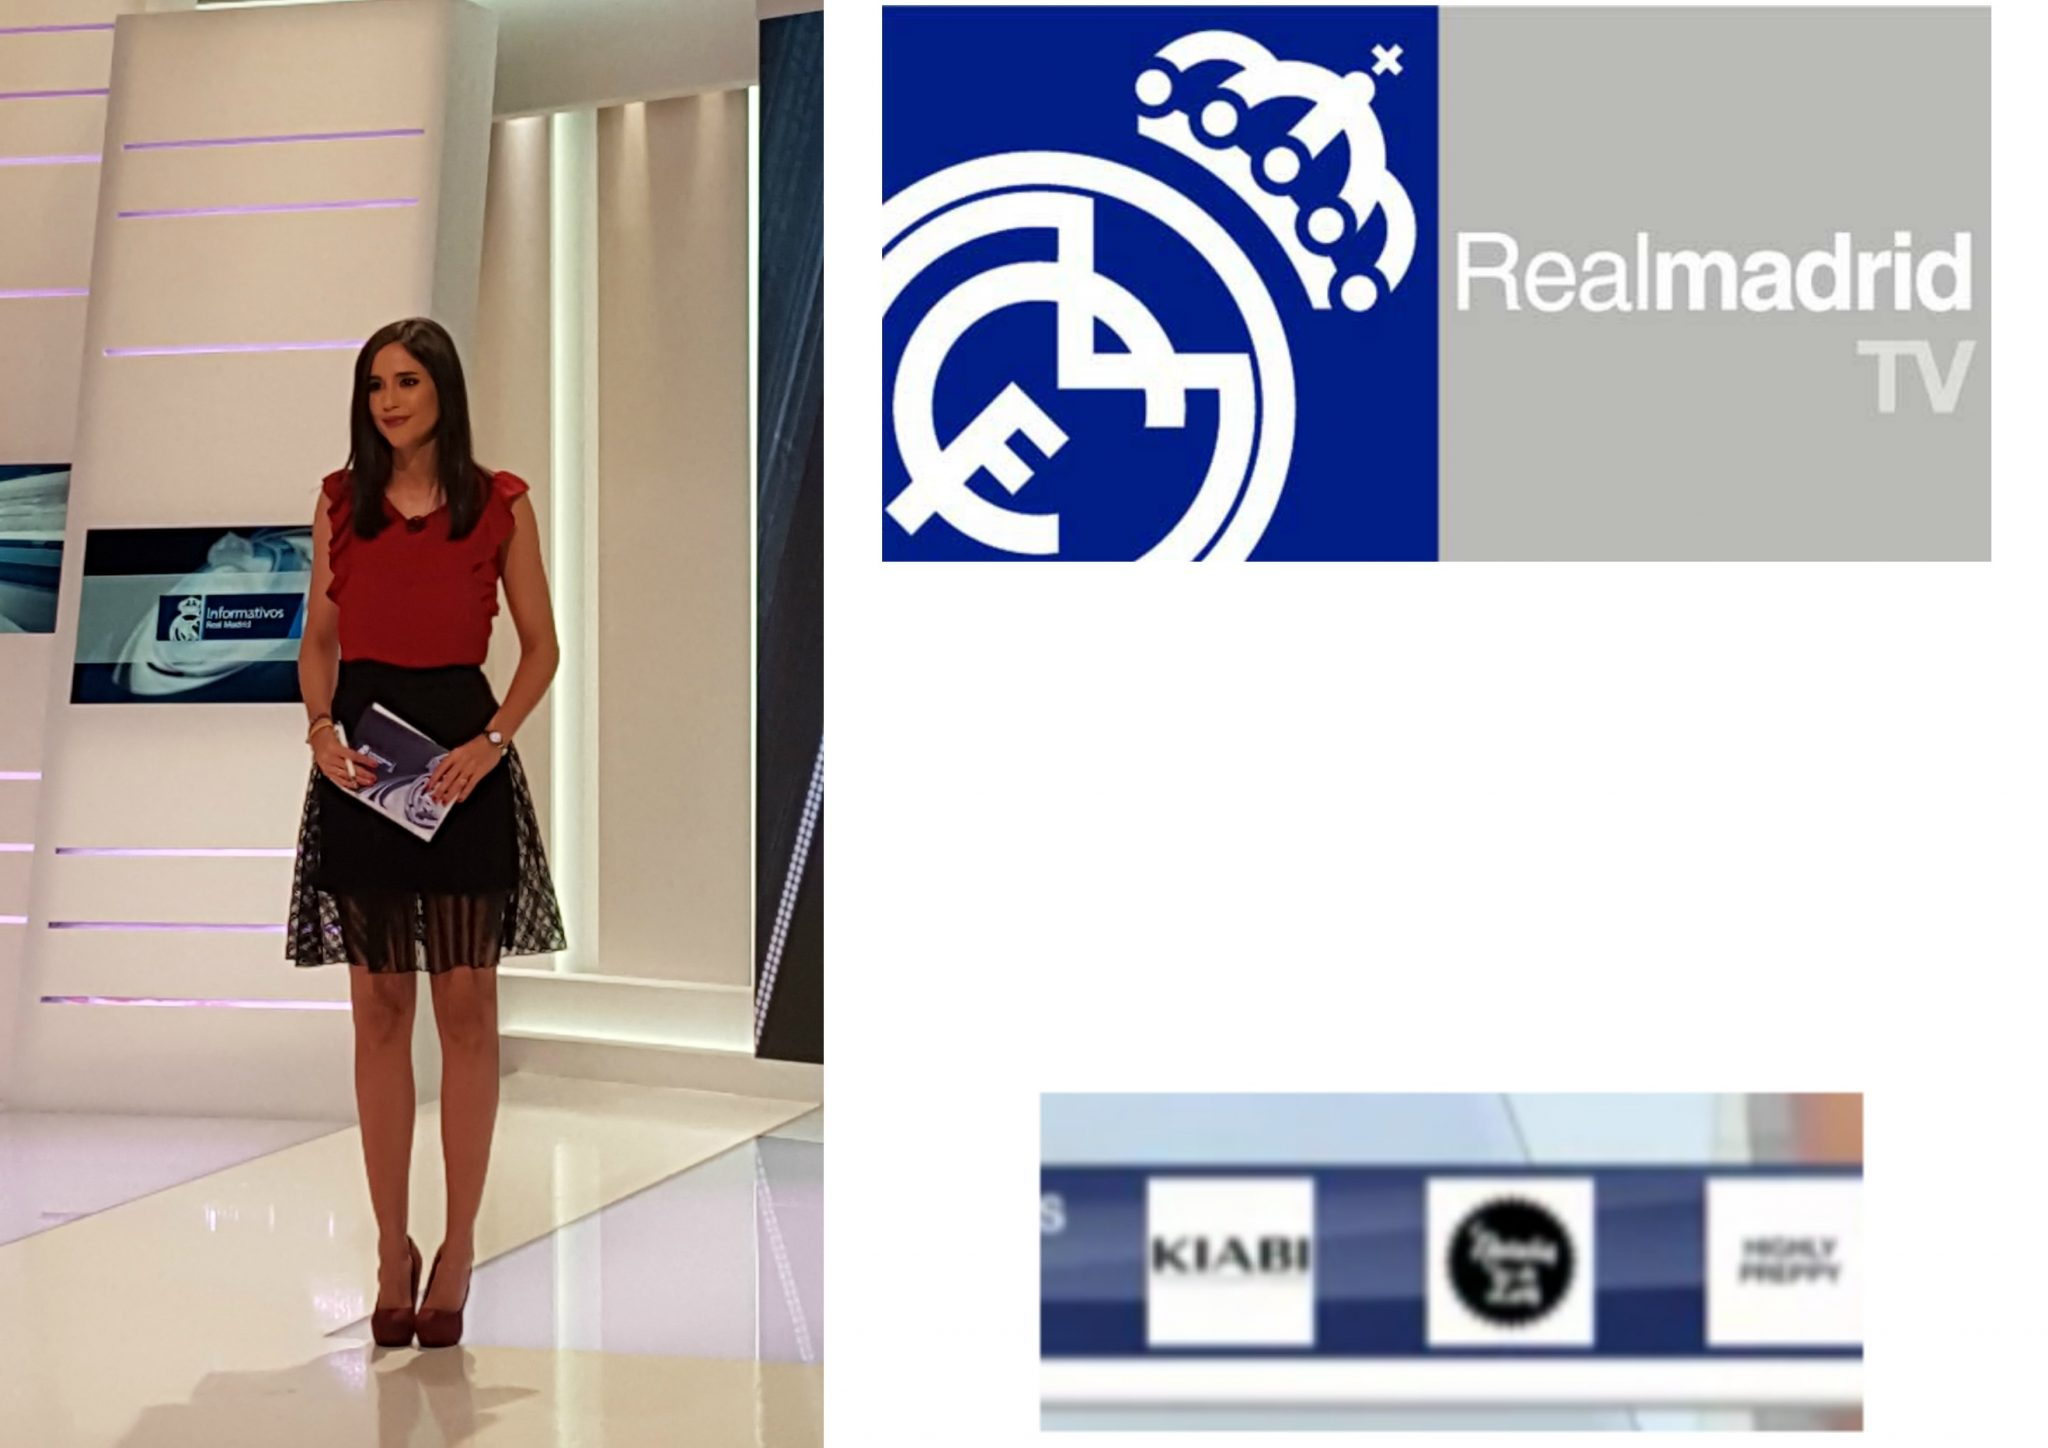 6 REAL MADRID TV